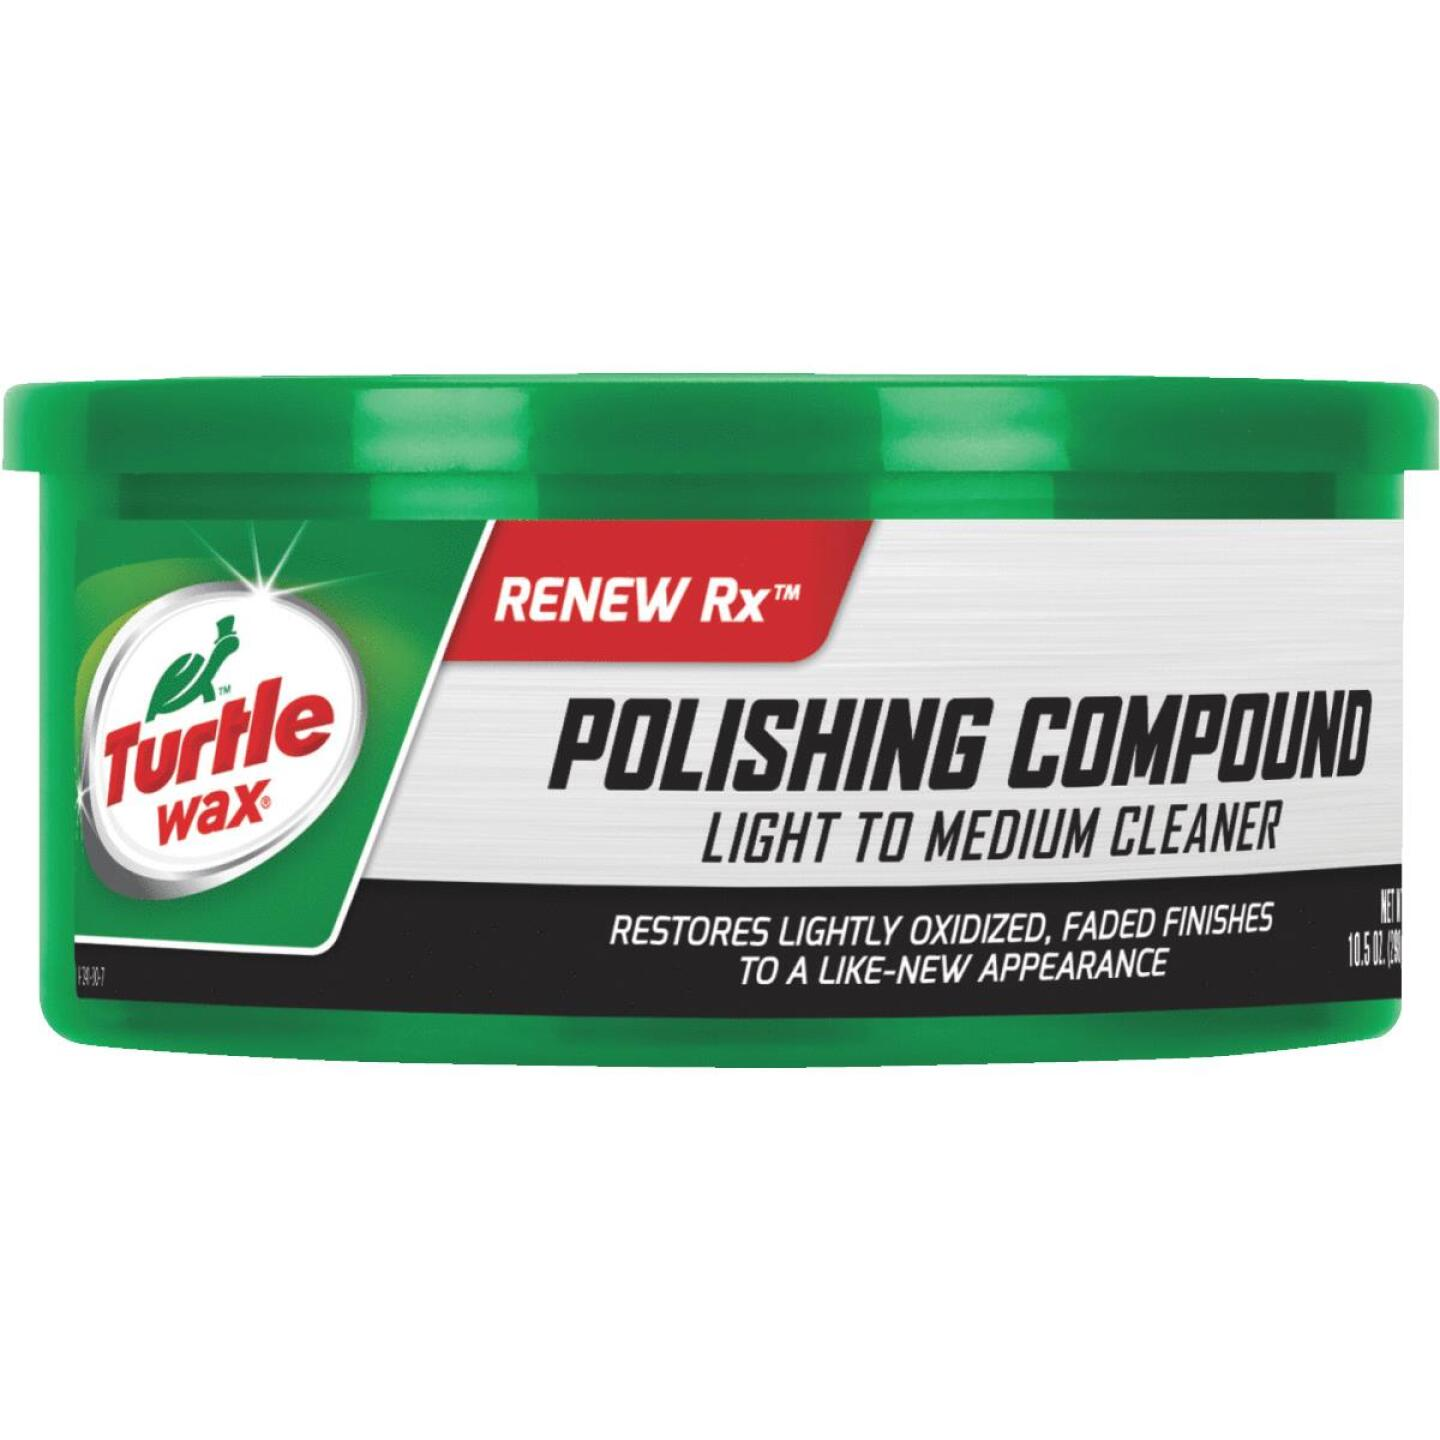 Turtle Wax RENEW Rx  10.5 oz Paste White Polishing Compound Image 1